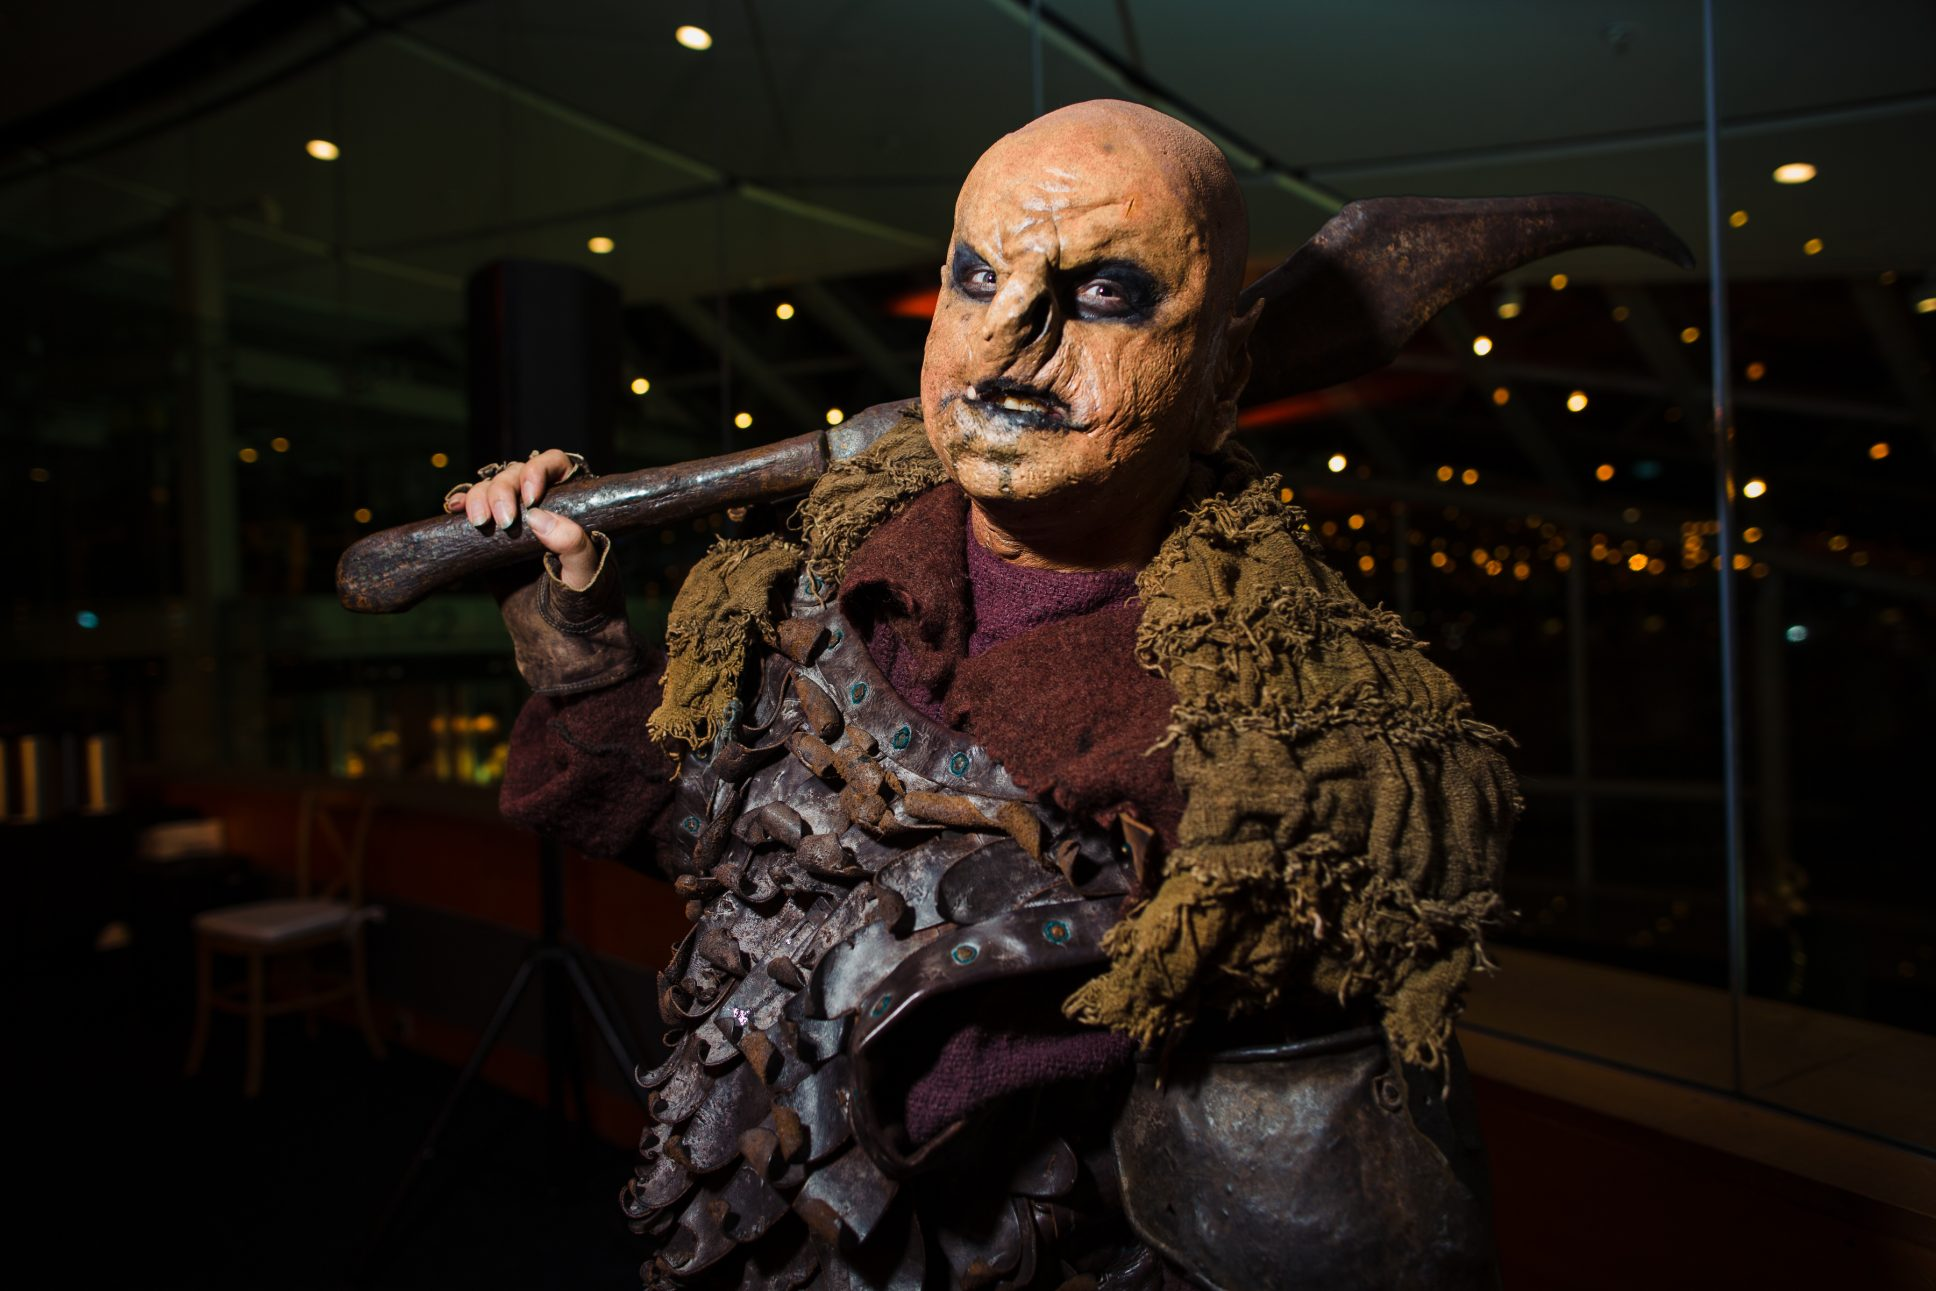 Man dressed in orc costume from lord of the rings